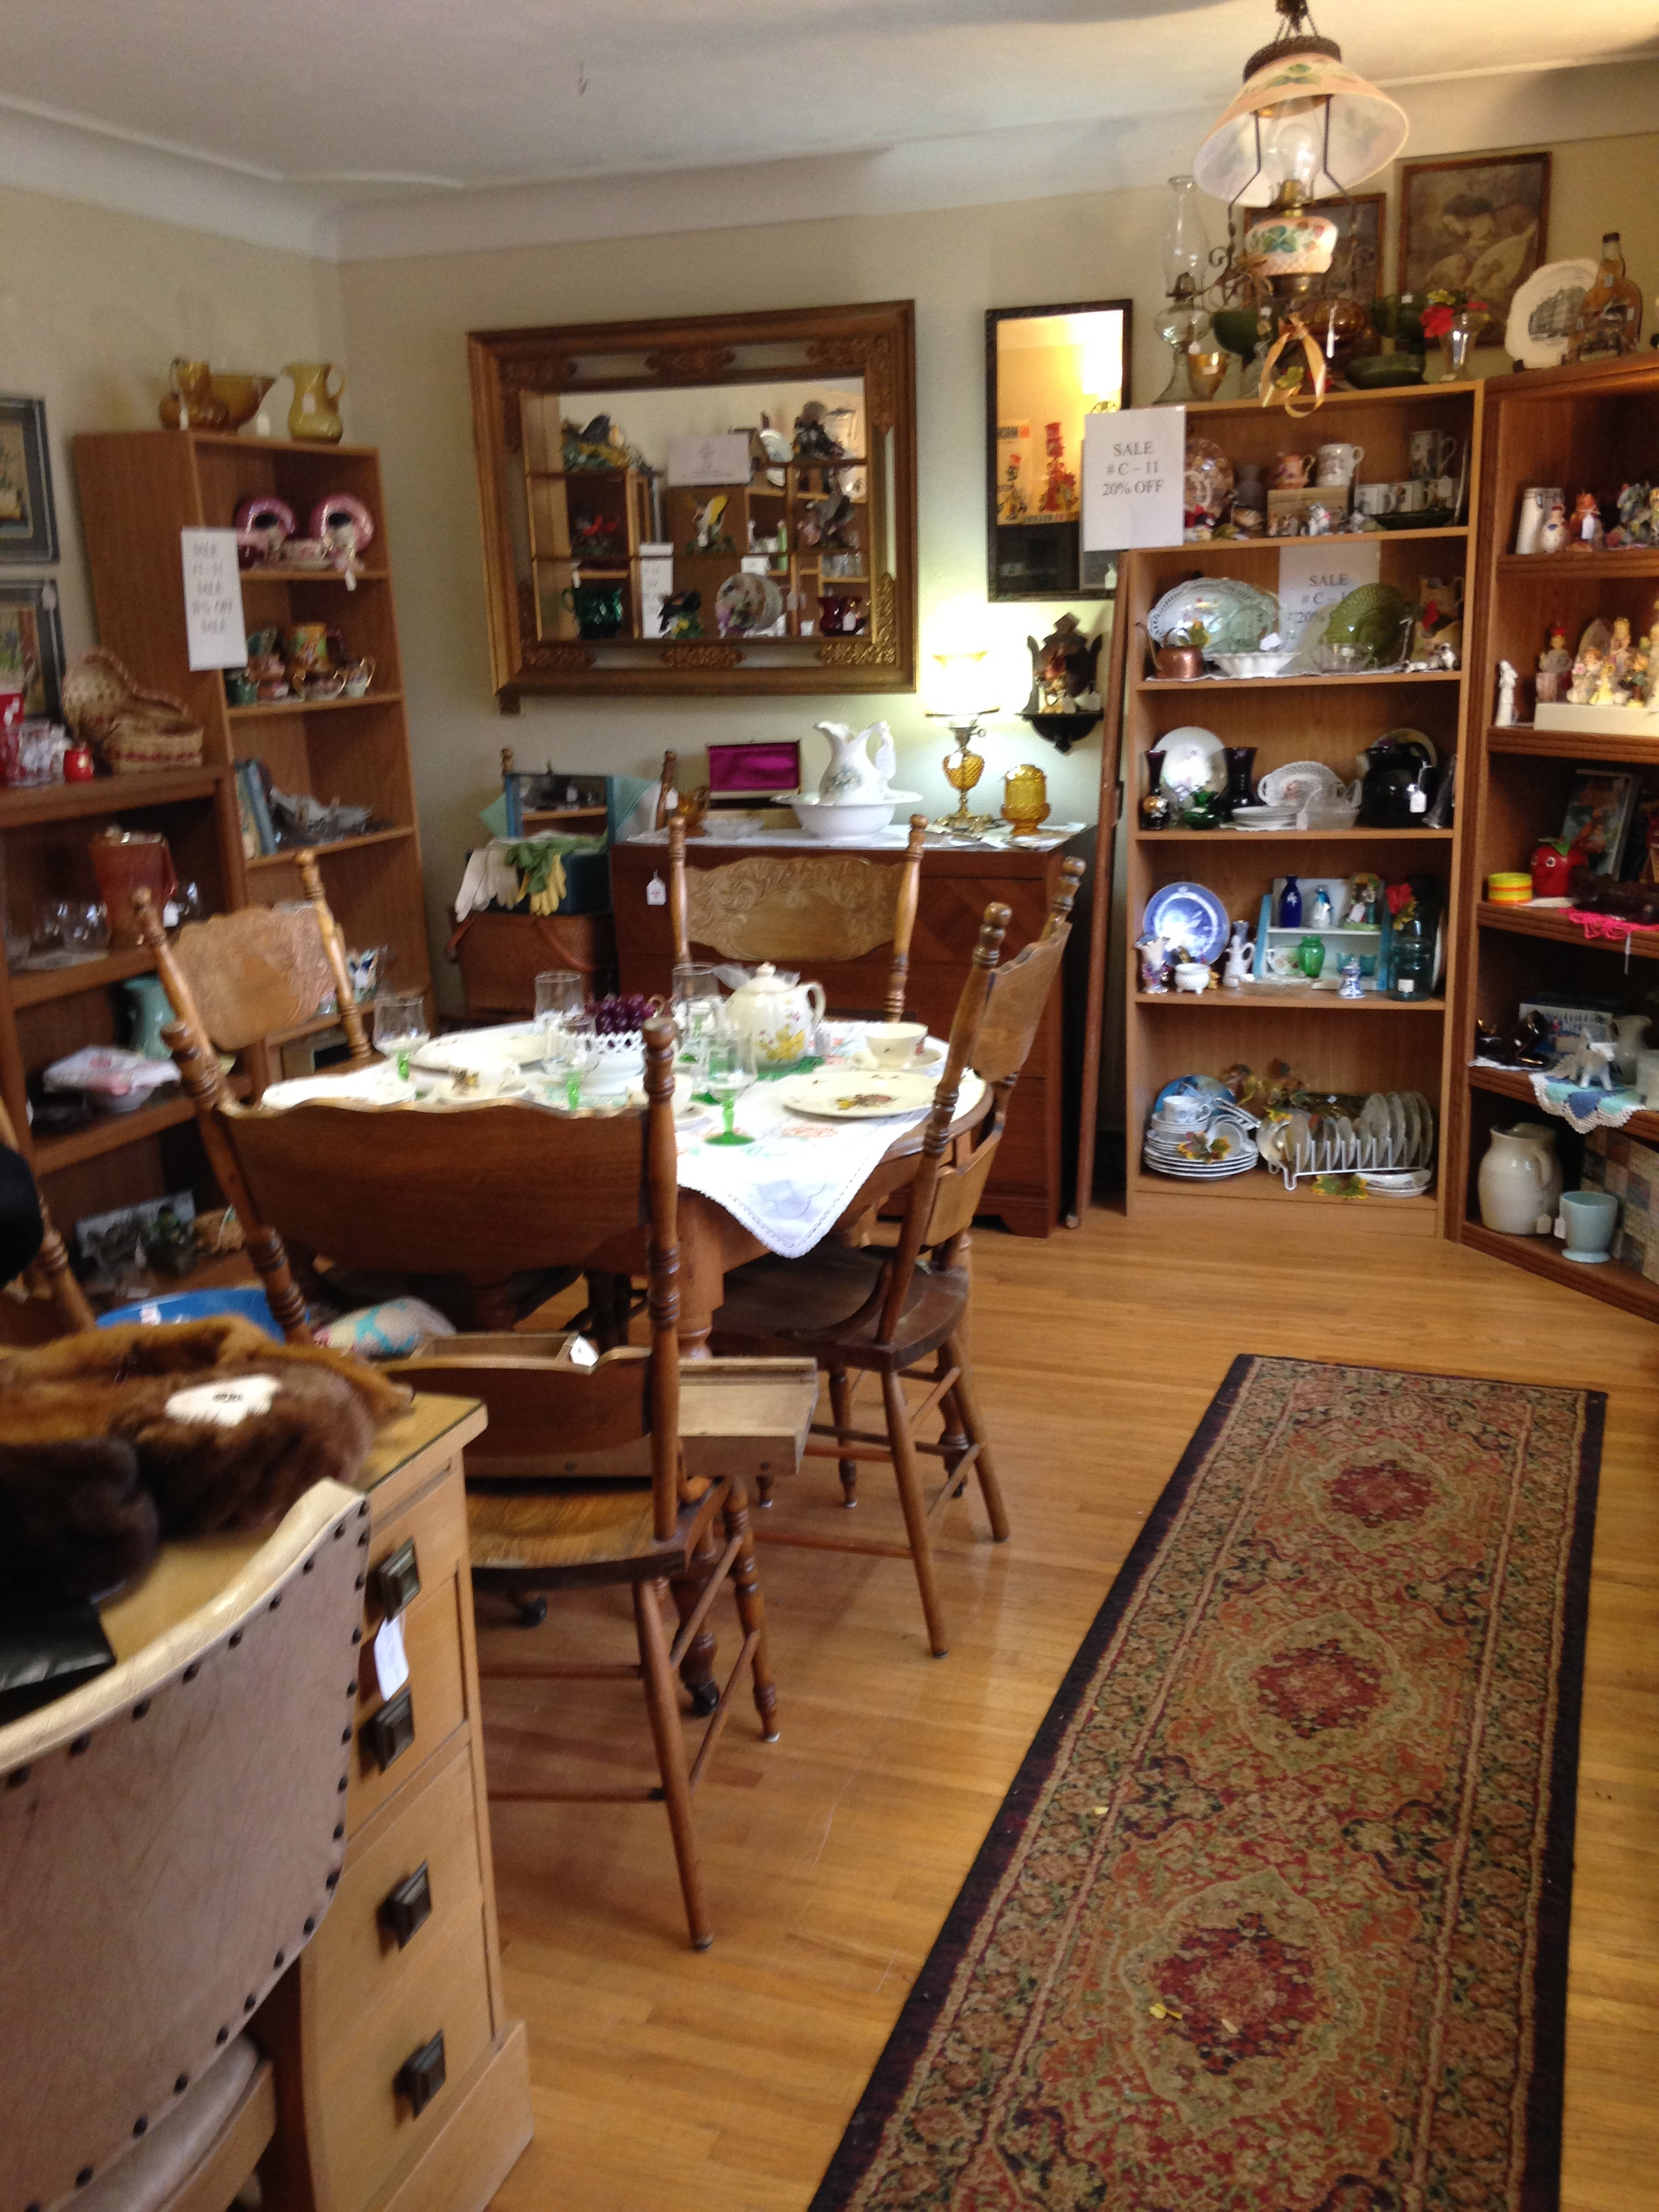 Our antique mall has items from over 20 vendors.